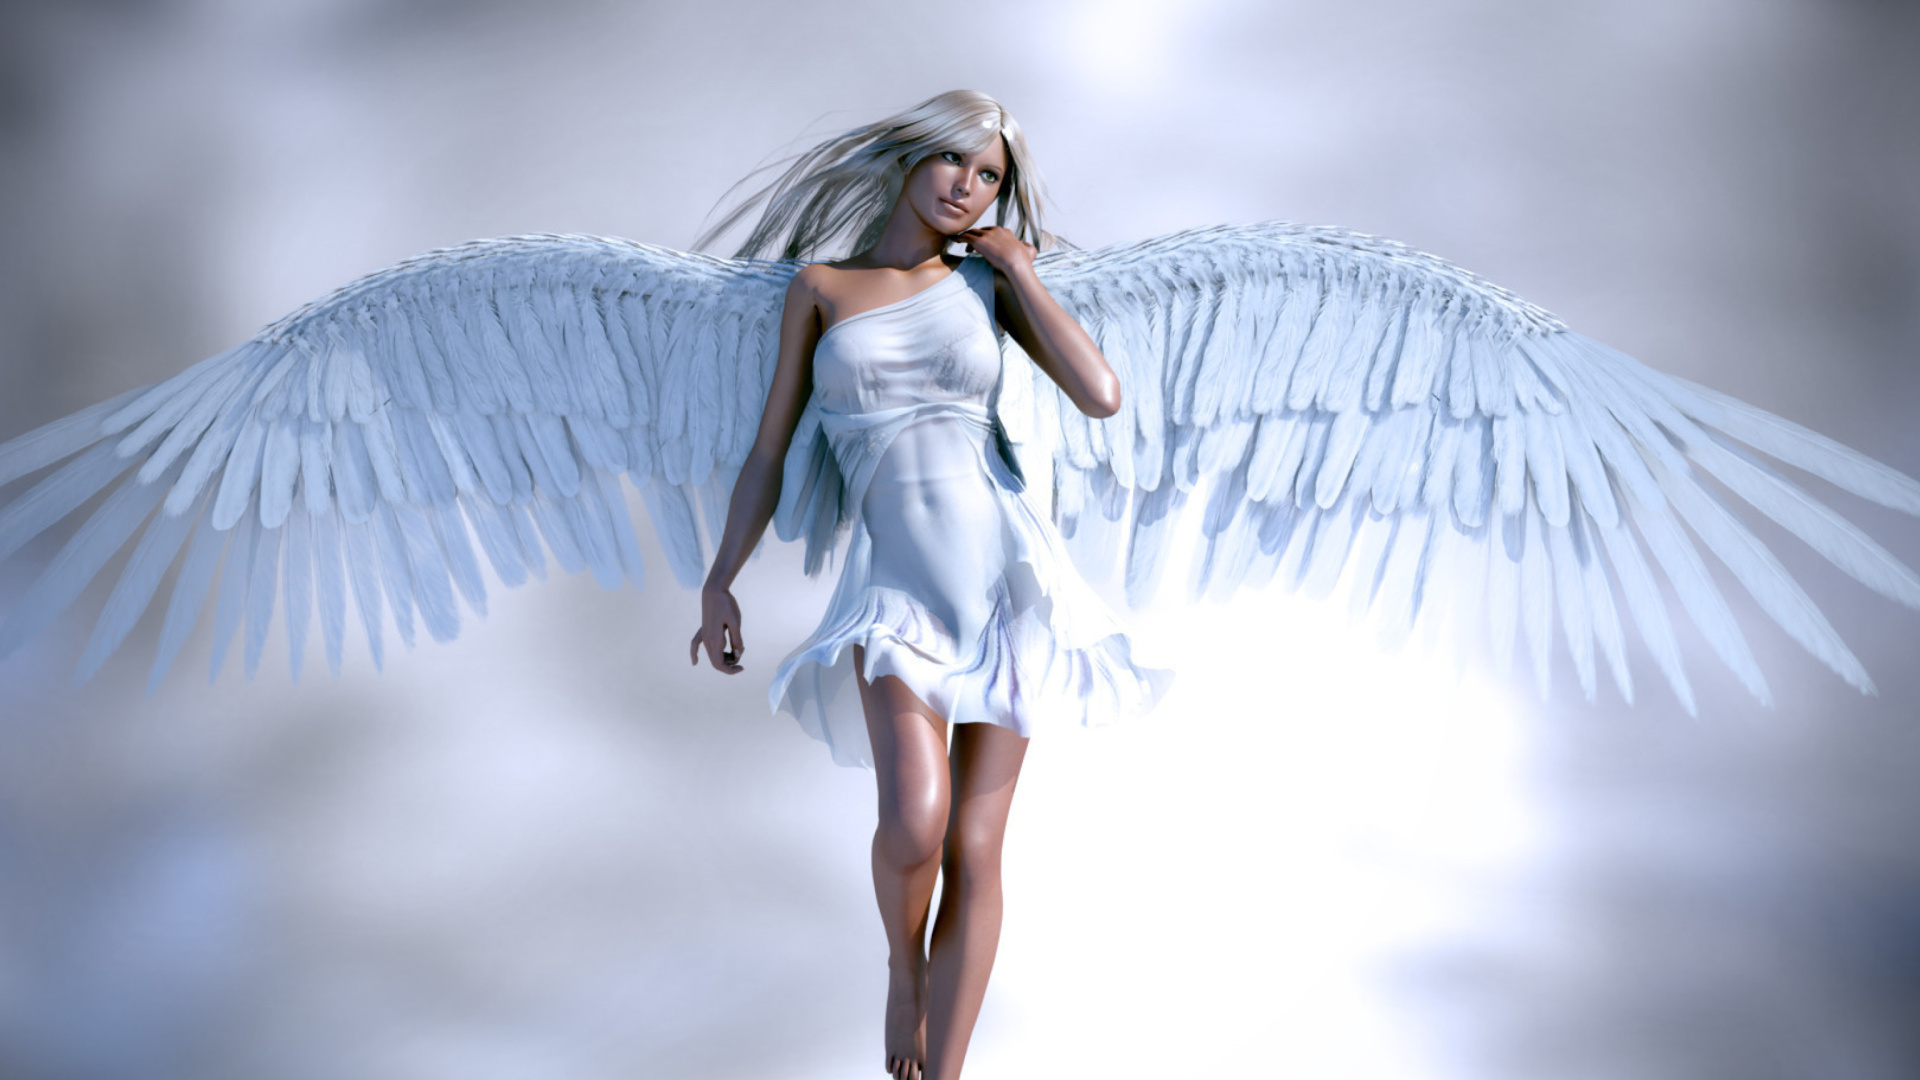 free 1920X1080 Angel 3D 1920x1080 wallpaper screensaver preview id 1920x1080